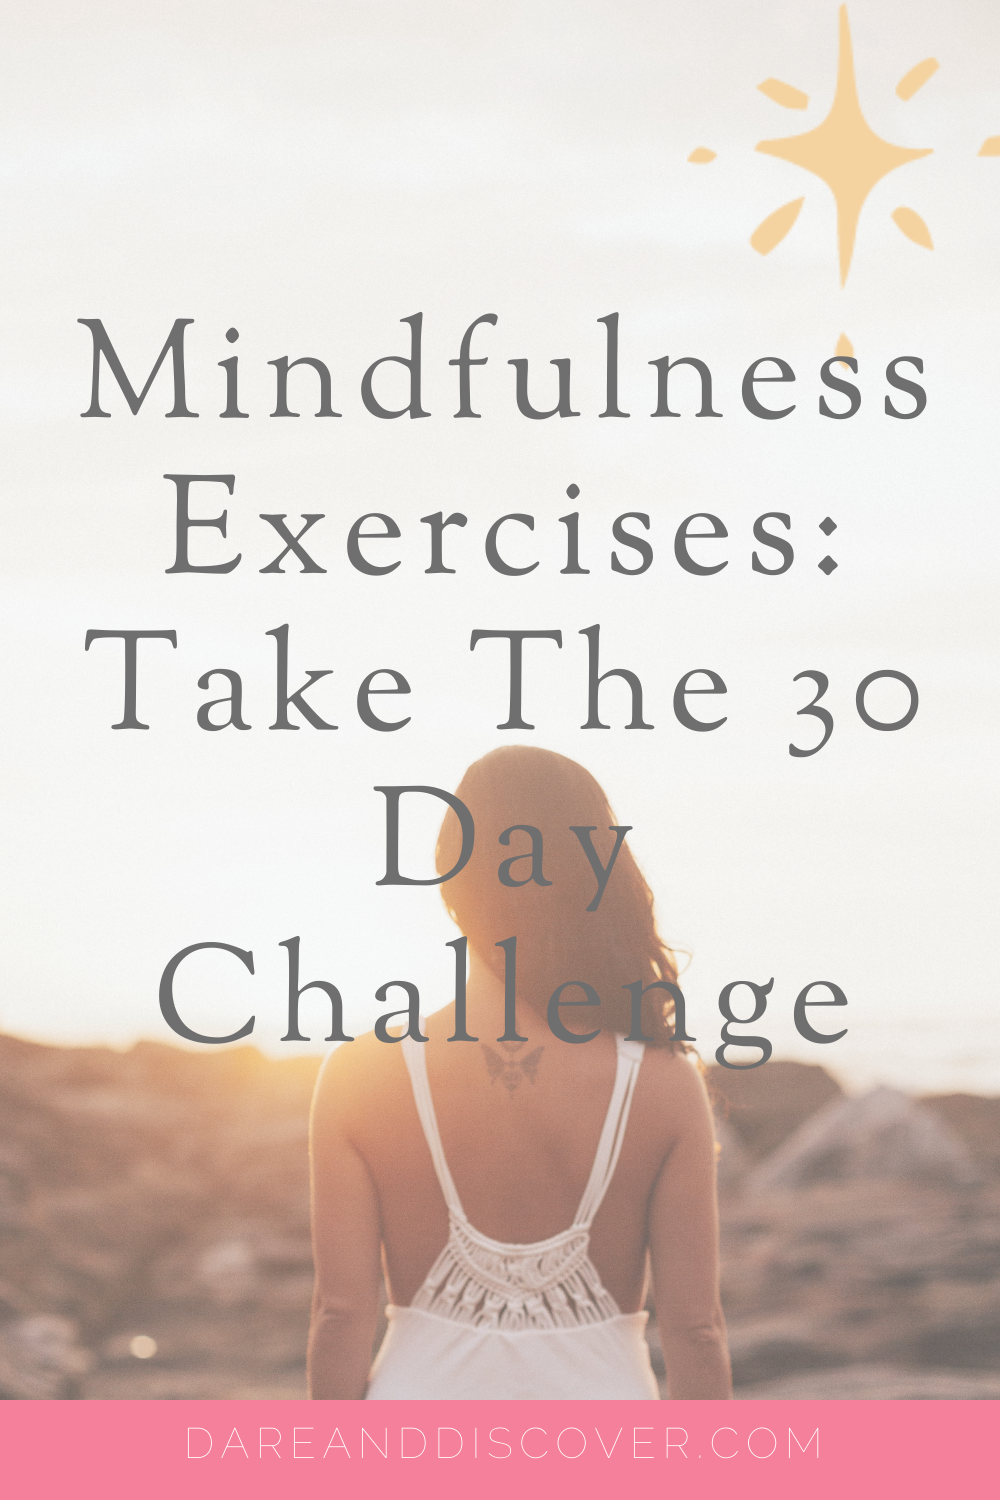 I often get stuck on what mindfulness exercises to use as I'm not really into mindfulness meditation. I was lucky to be gifted with the 30 Day Mindfulness Challenge pack from Mind Panda. It contains a pack of cards containing mindfulness exercises, together with a mindfulness journal to note down your thoughts. If you want to develop your mindfulness practice, this is a great way to start! | Mindfulness Activities | Mindfulness Practice | #Mindfulness #Meditation #SelfCare